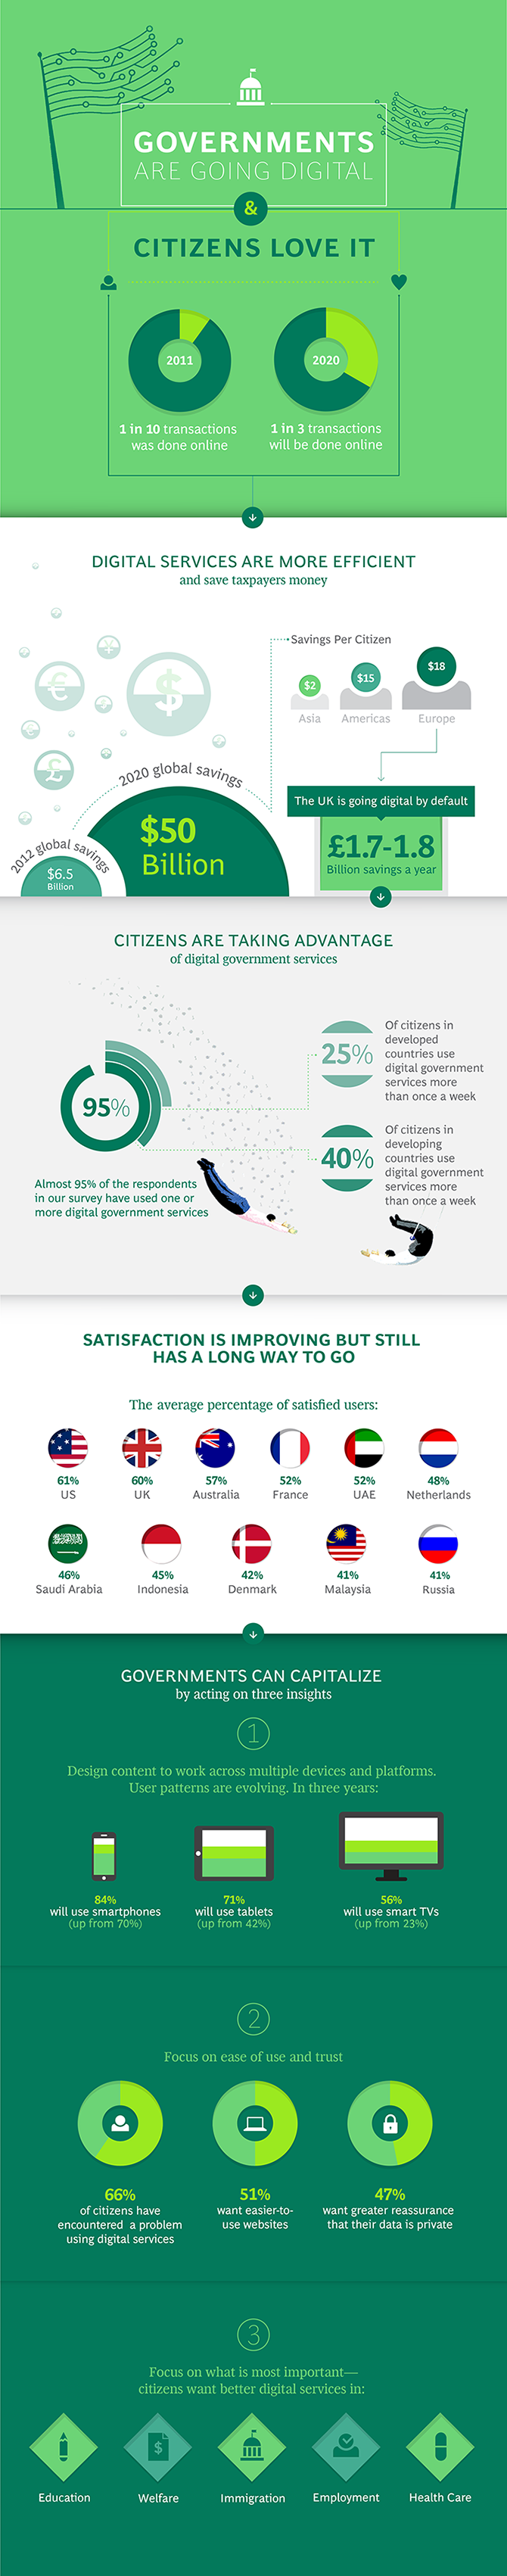 BCG_eGov_Infographic_670width.png